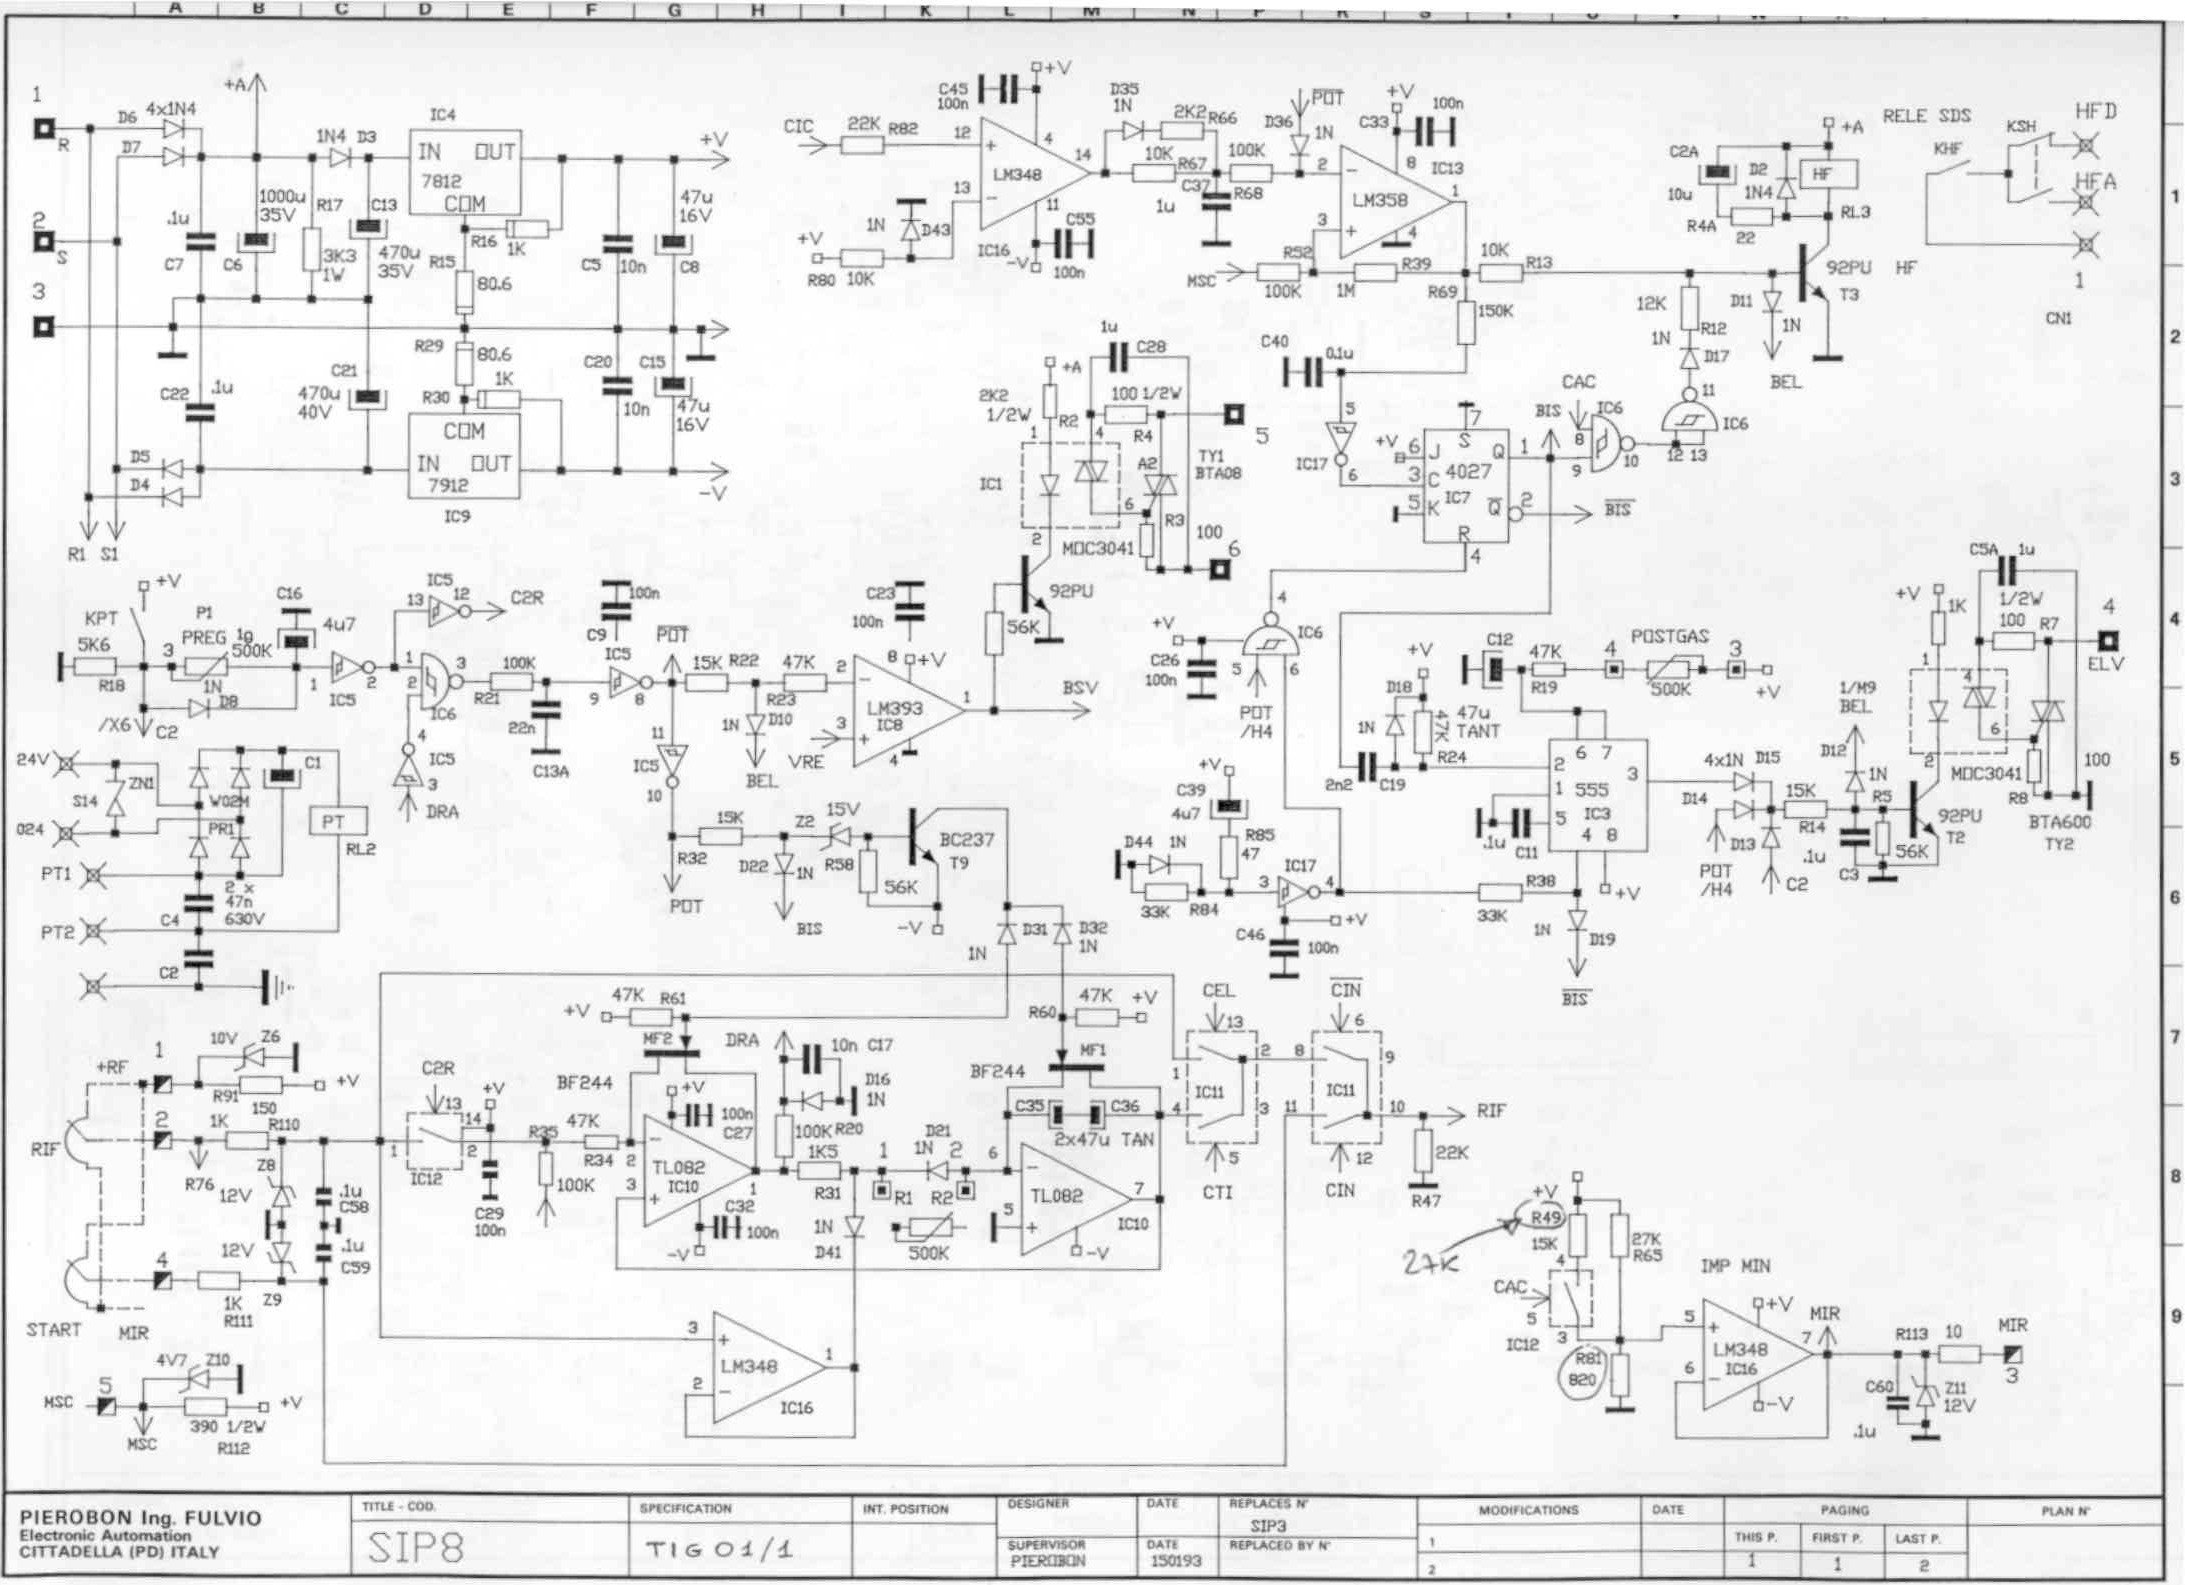 sip spot welder wiring diagram 97 ford expedition fuse box 05006 tig 160 ac dc circuit 1